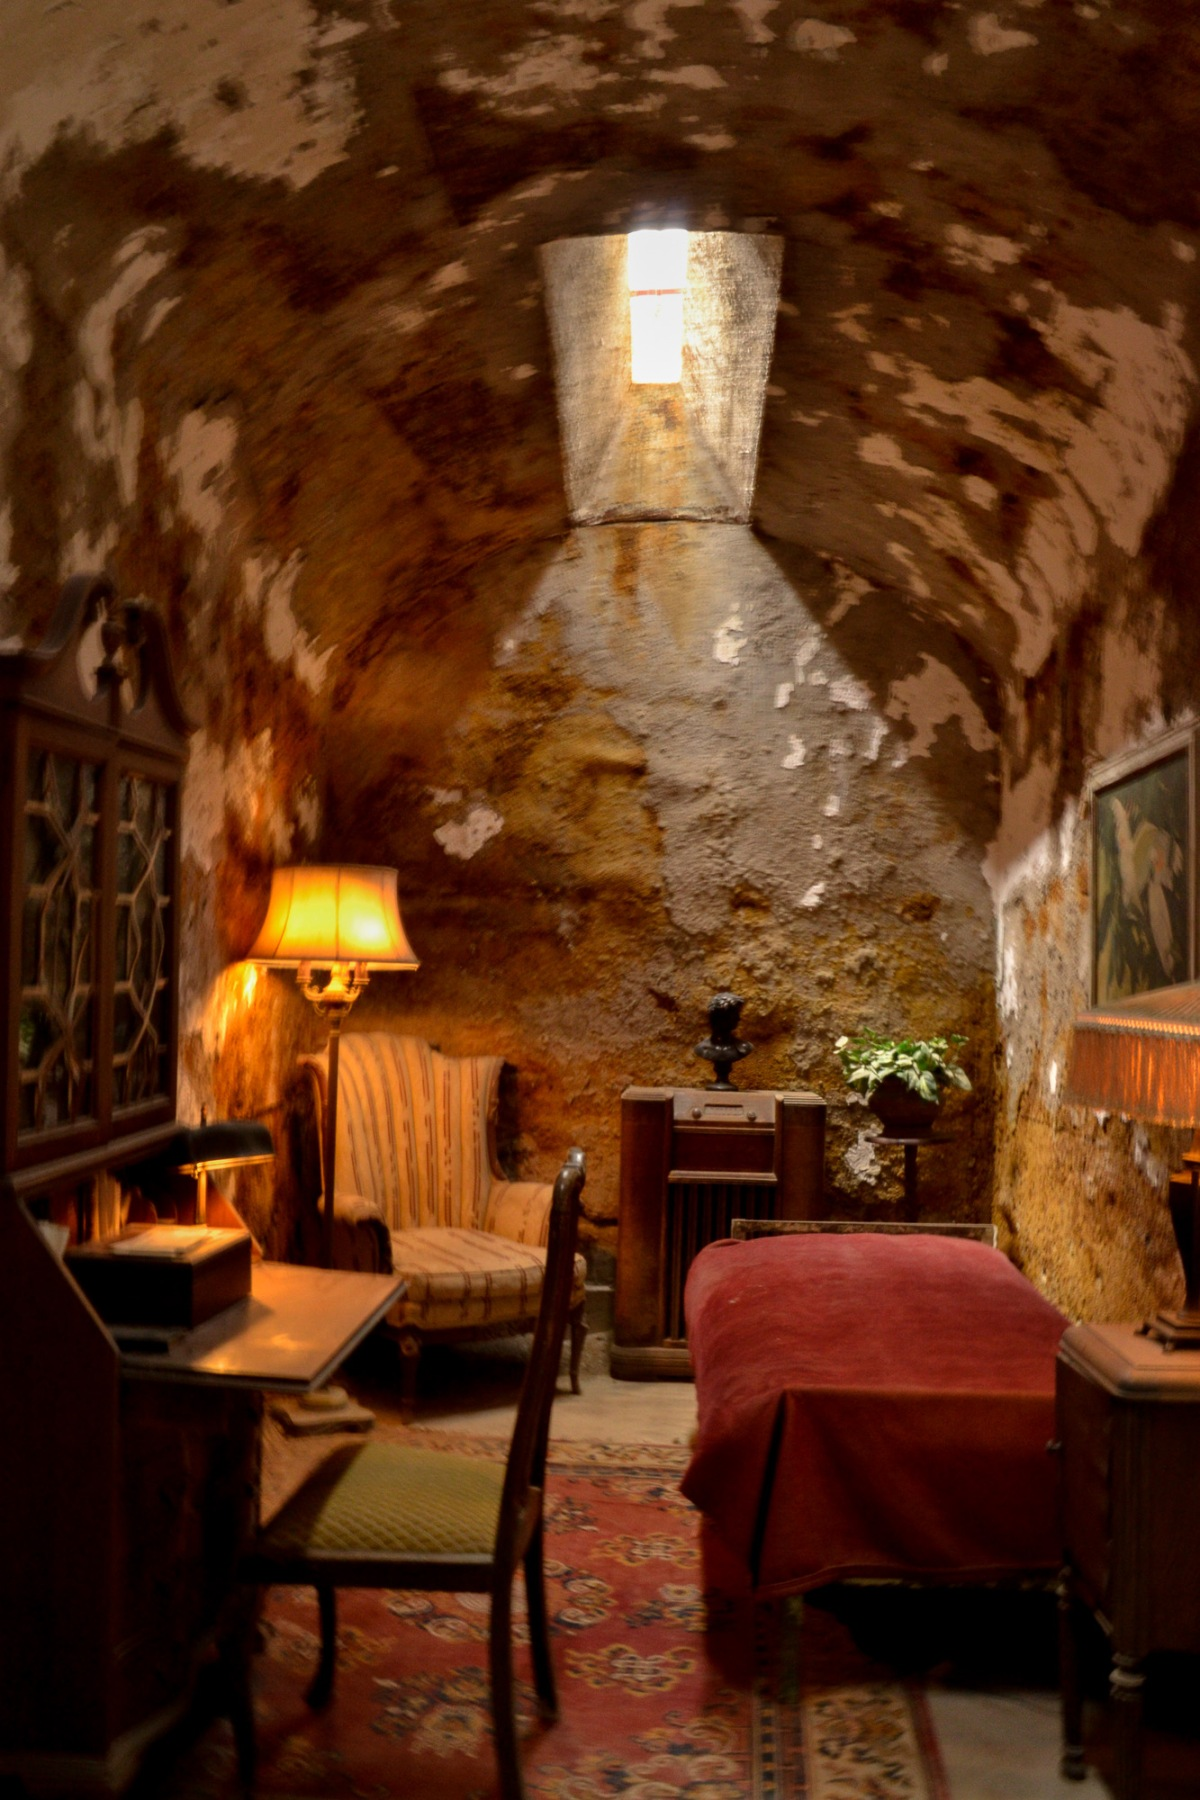 5-Capone' cell